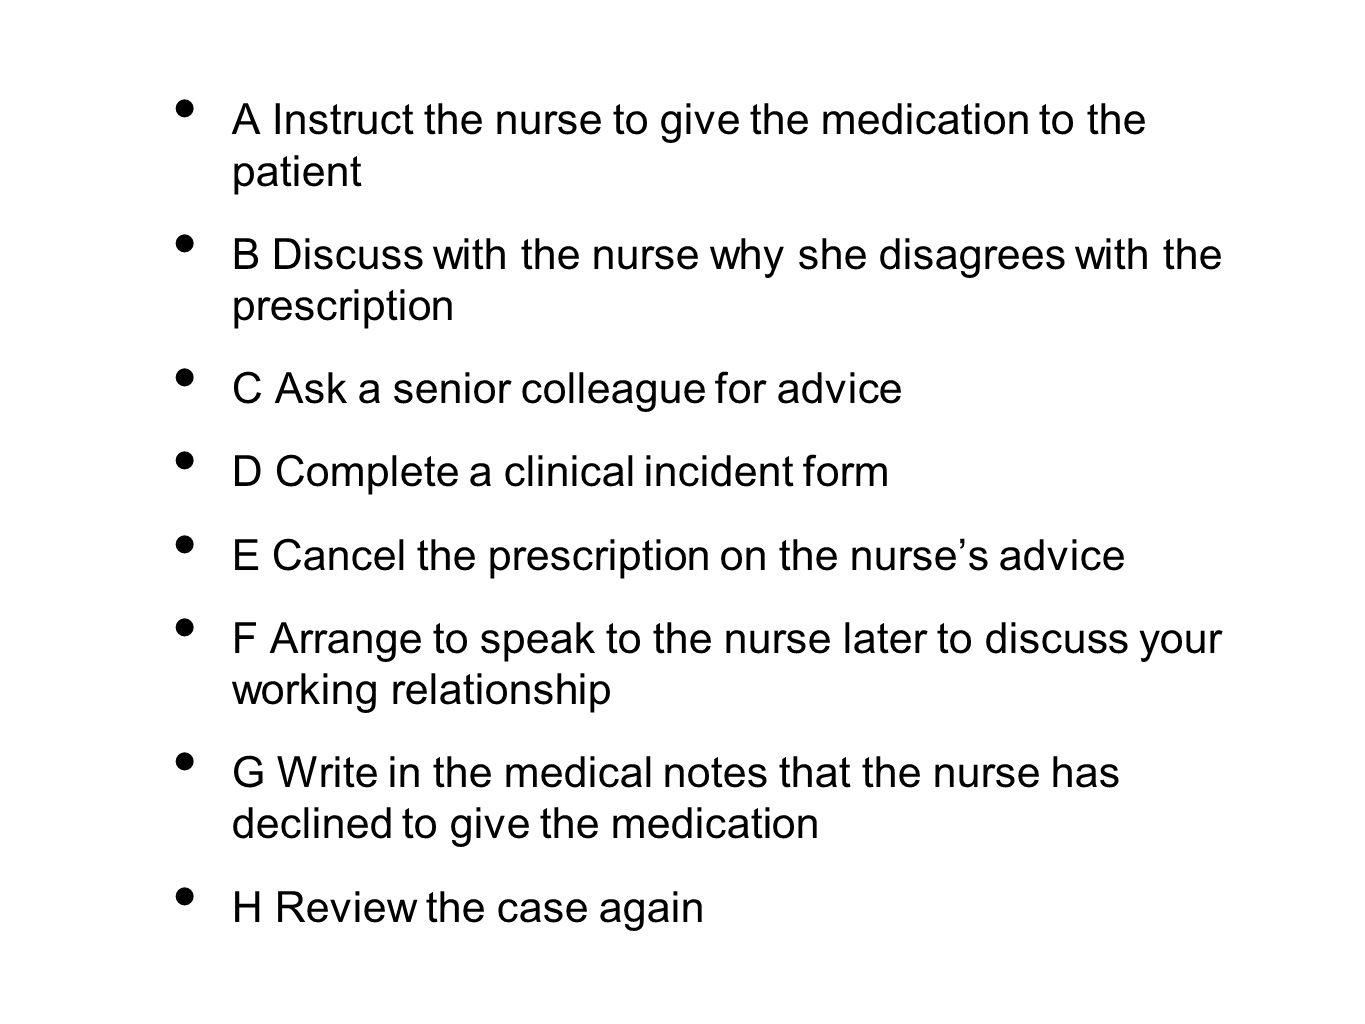 A Instruct the nurse to give the medication to the patient B Discuss with the nurse why she disagrees with the prescription C Ask a senior colleague for advice D Complete a clinical incident form E Cancel the prescription on the nurse's advice F Arrange to speak to the nurse later to discuss your working relationship G Write in the medical notes that the nurse has declined to give the medication H Review the case again